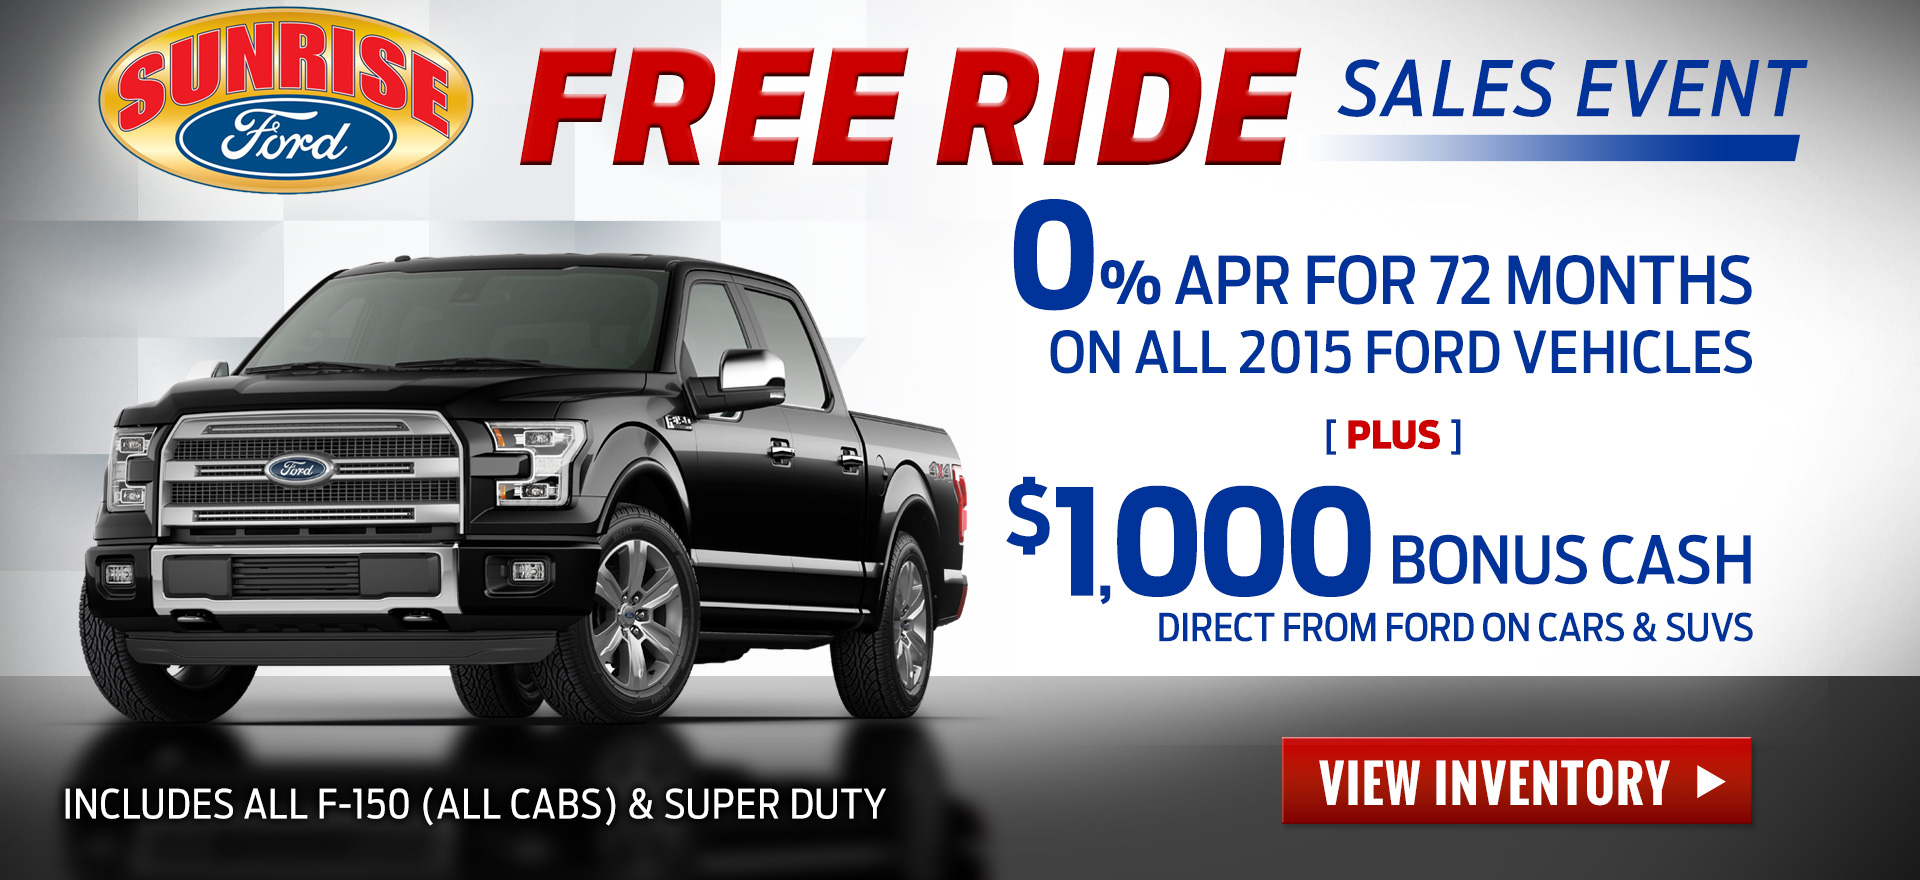 Free Ride Sales Event